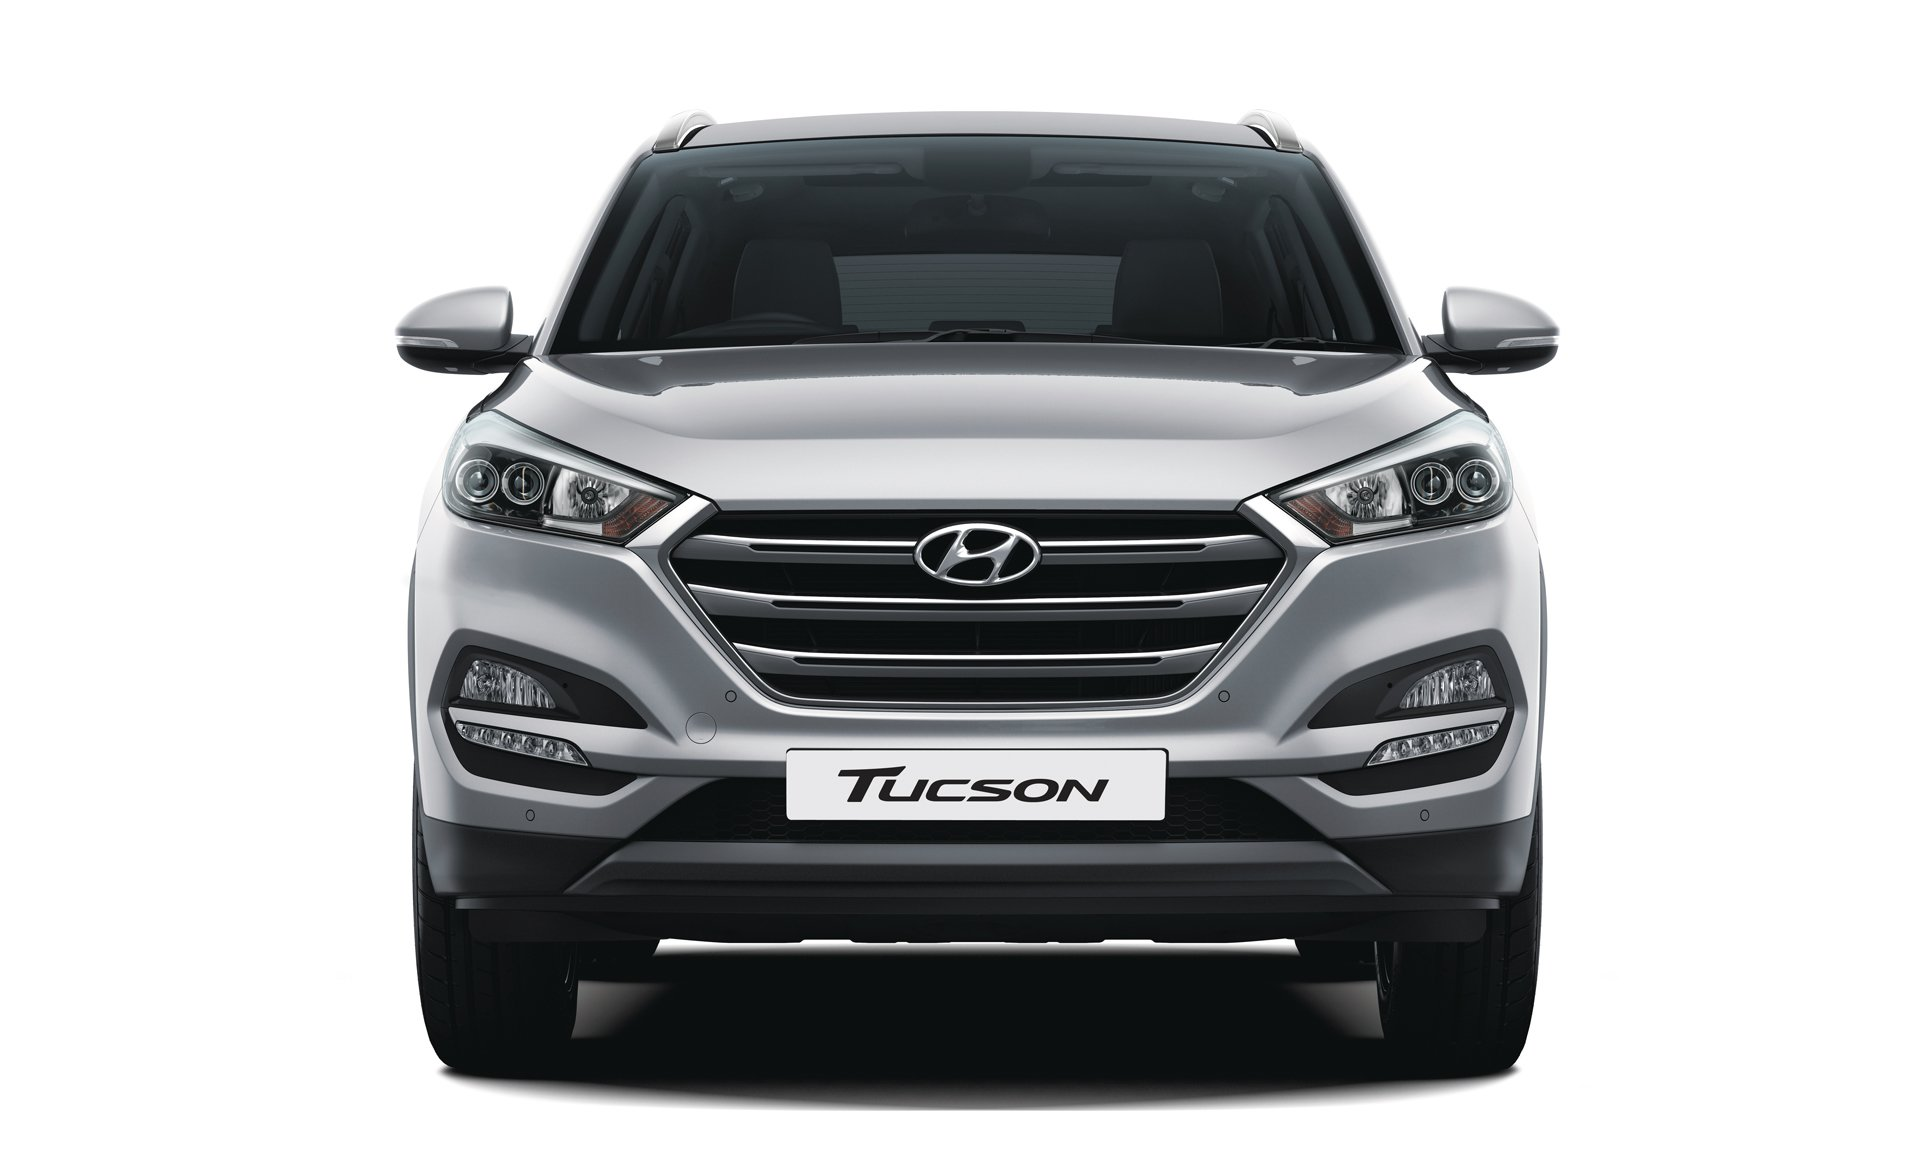 new hyundai tucson 2016 india price lakhs specifications mileage. Black Bedroom Furniture Sets. Home Design Ideas